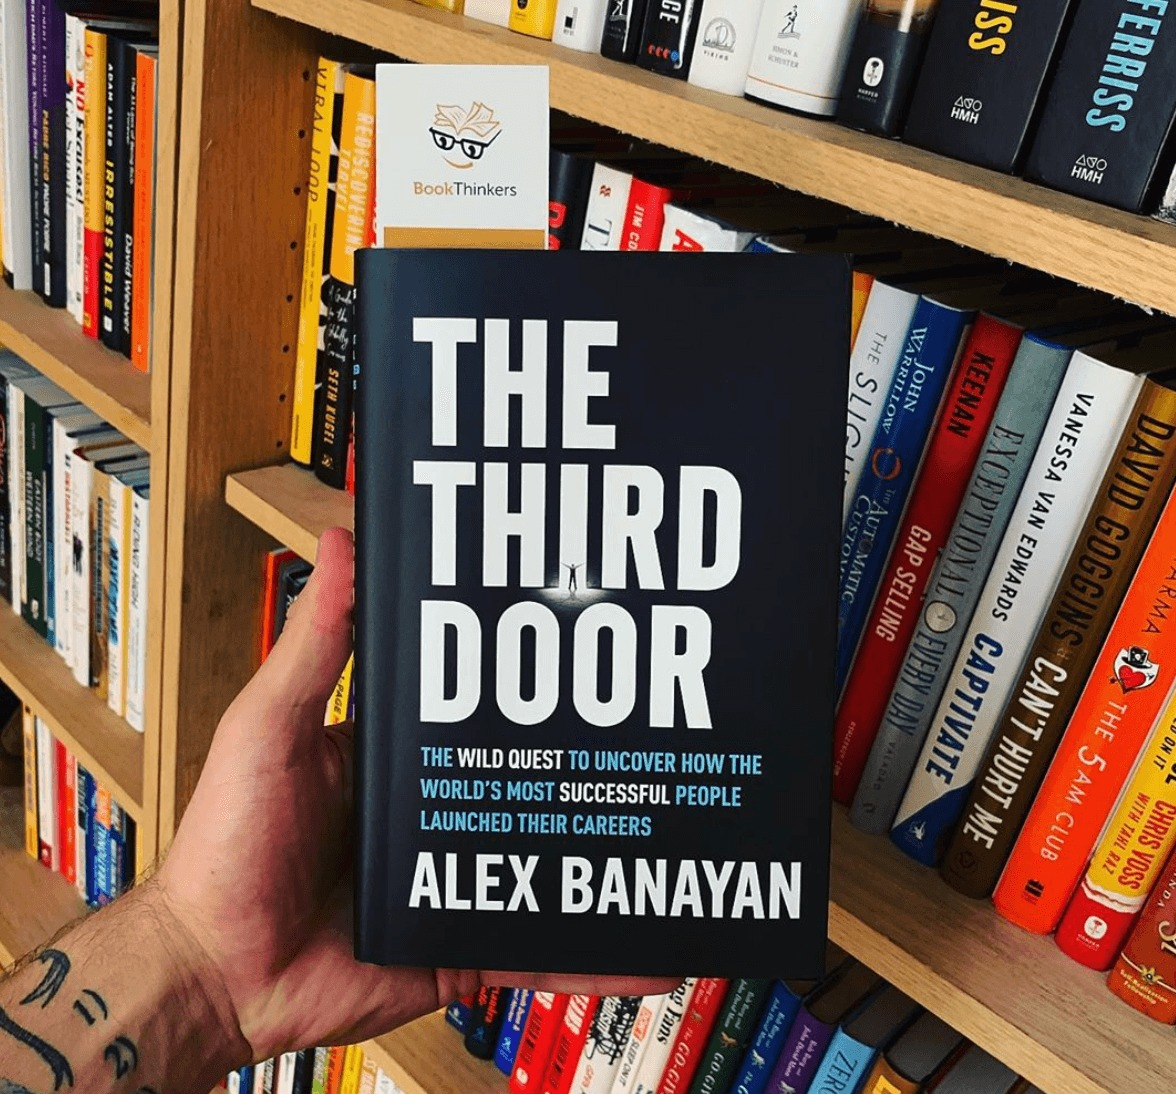 The Third Door by Alex Banayan.